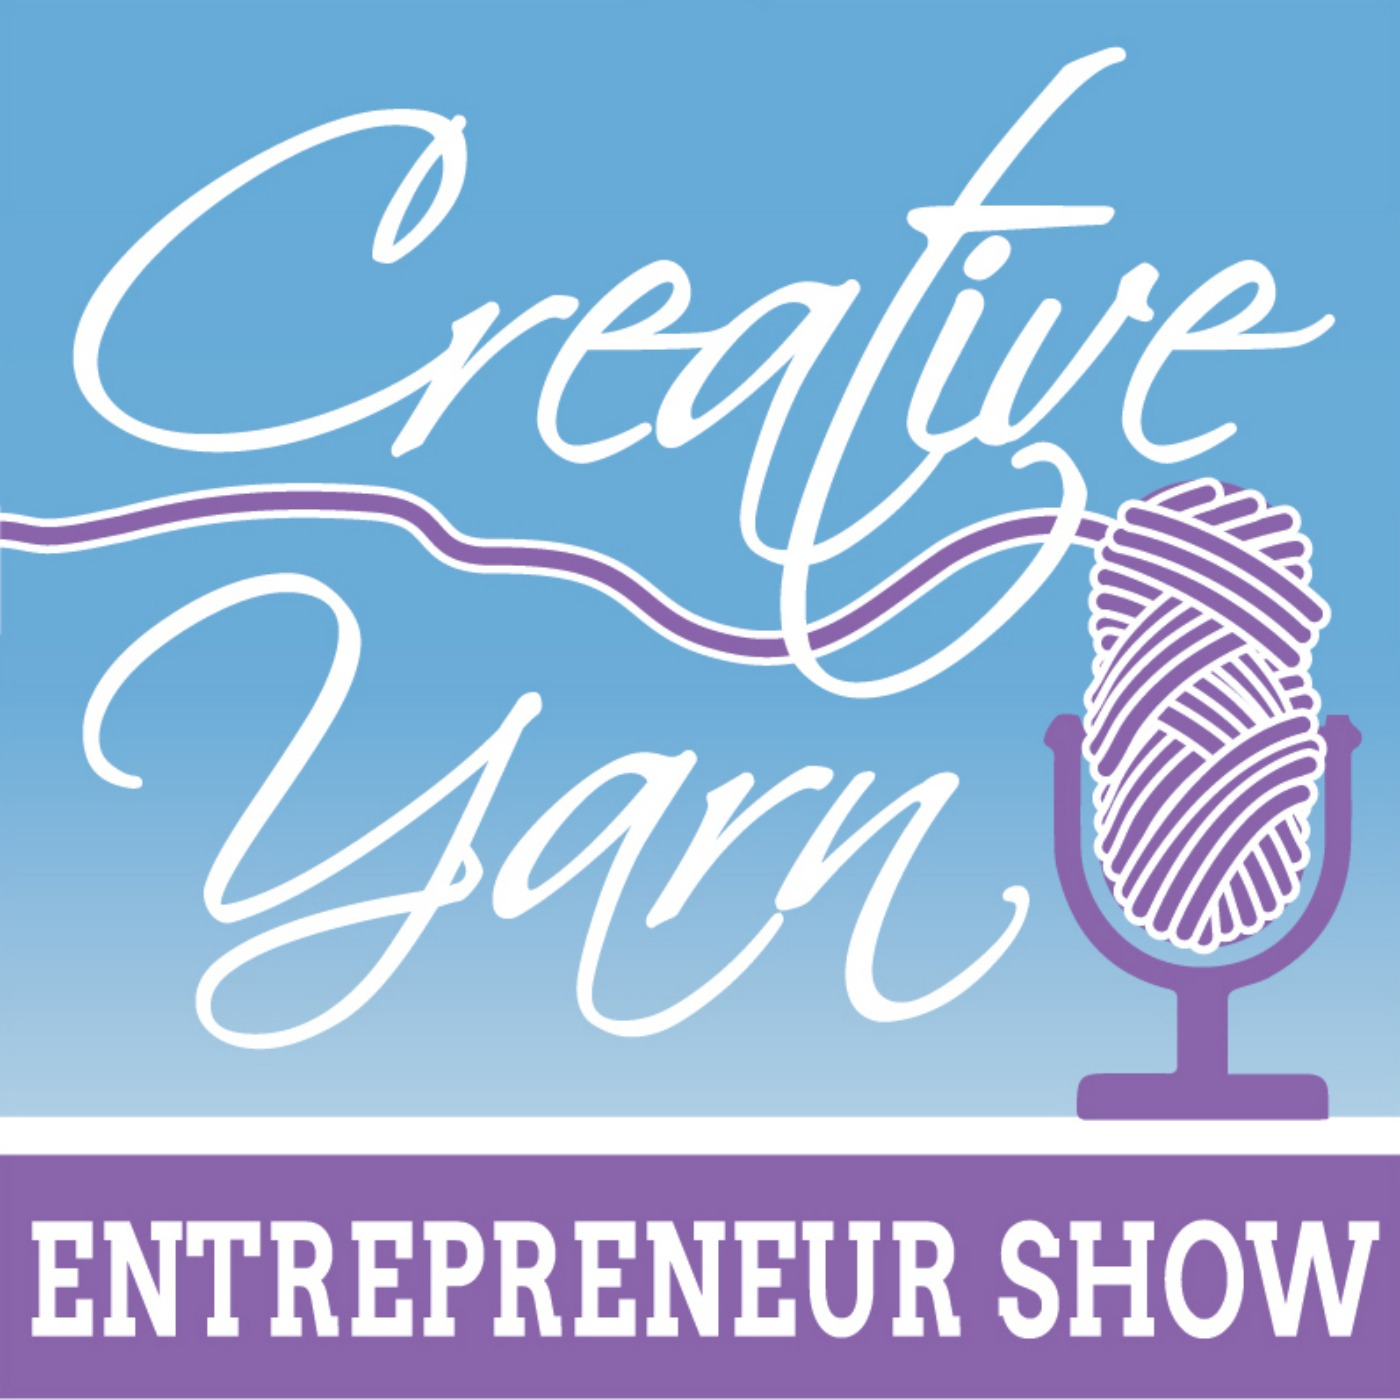 Episode 50: Do I Need to Formalize My Yarn-Related Business?